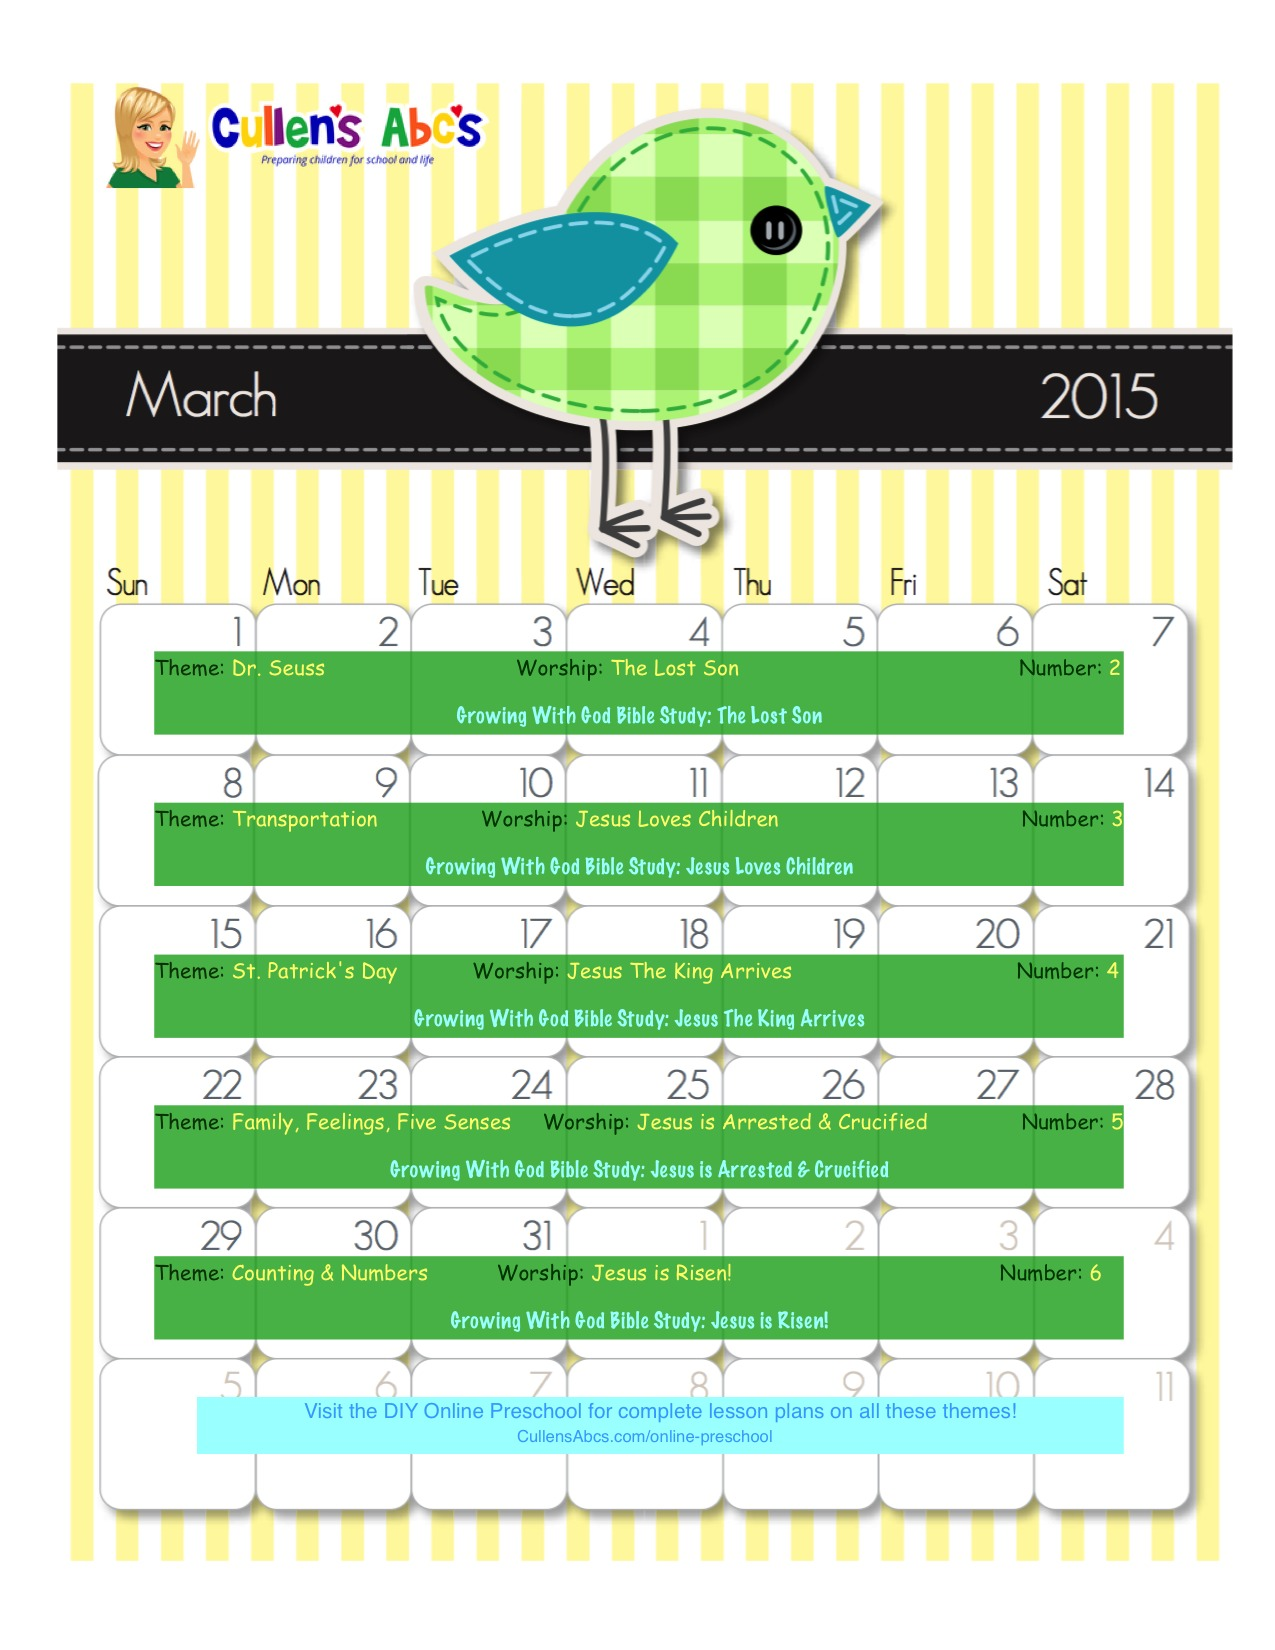 March Online Preschool Calendar 2015